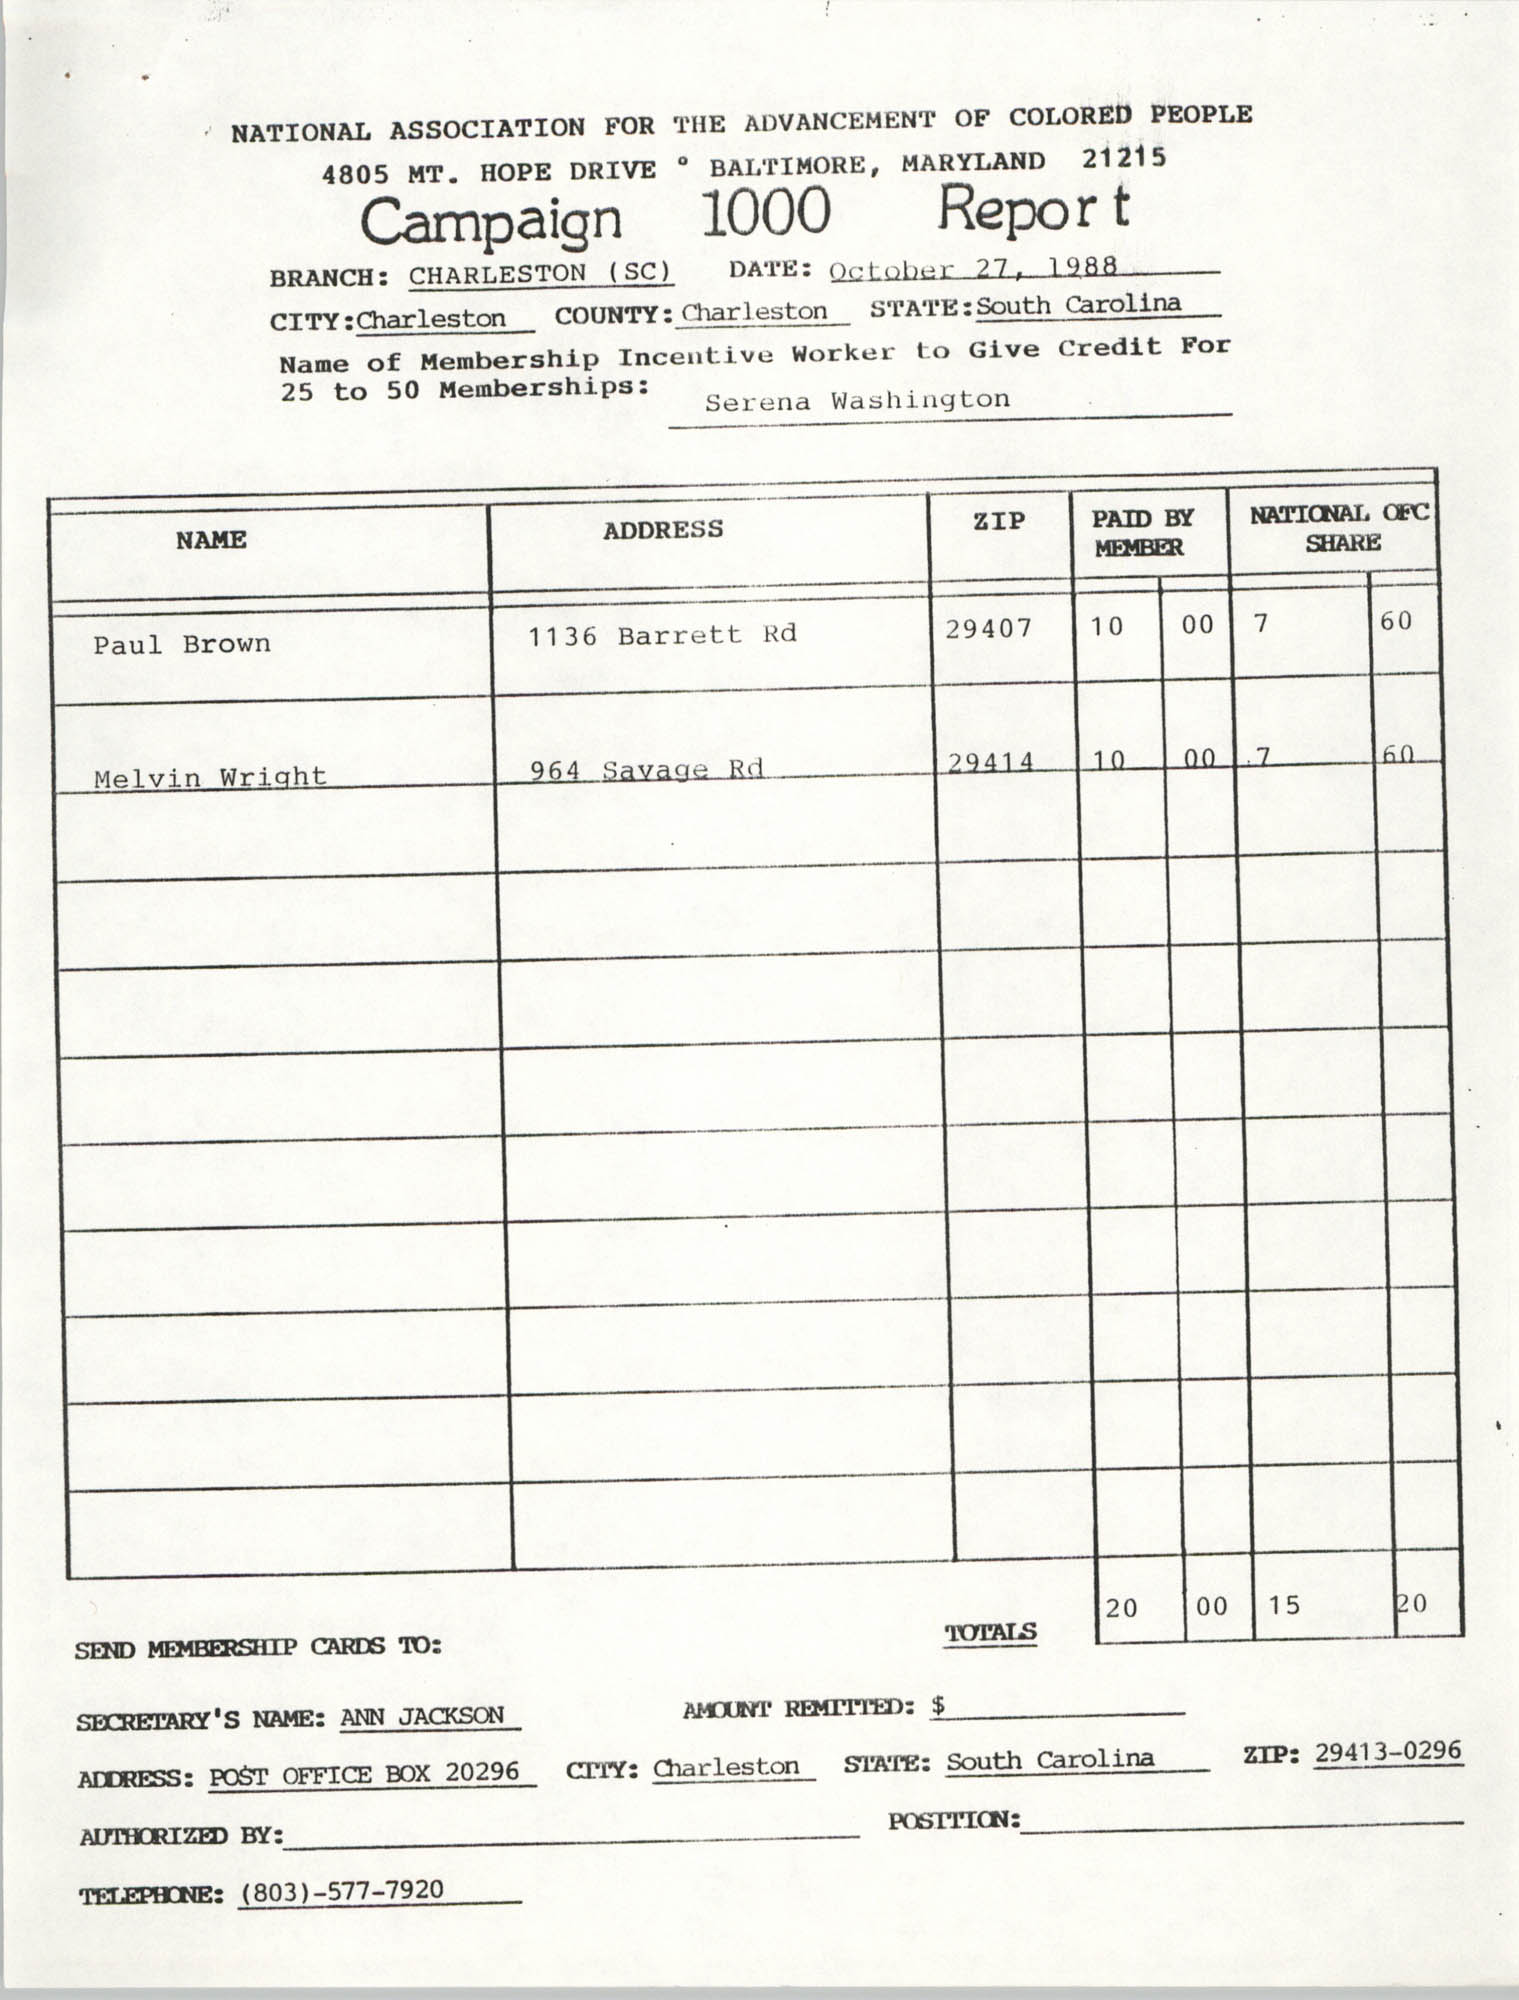 Campaign 1000 Report, Serena Washington, Charleston Branch of the NAACP, October 27, 1988